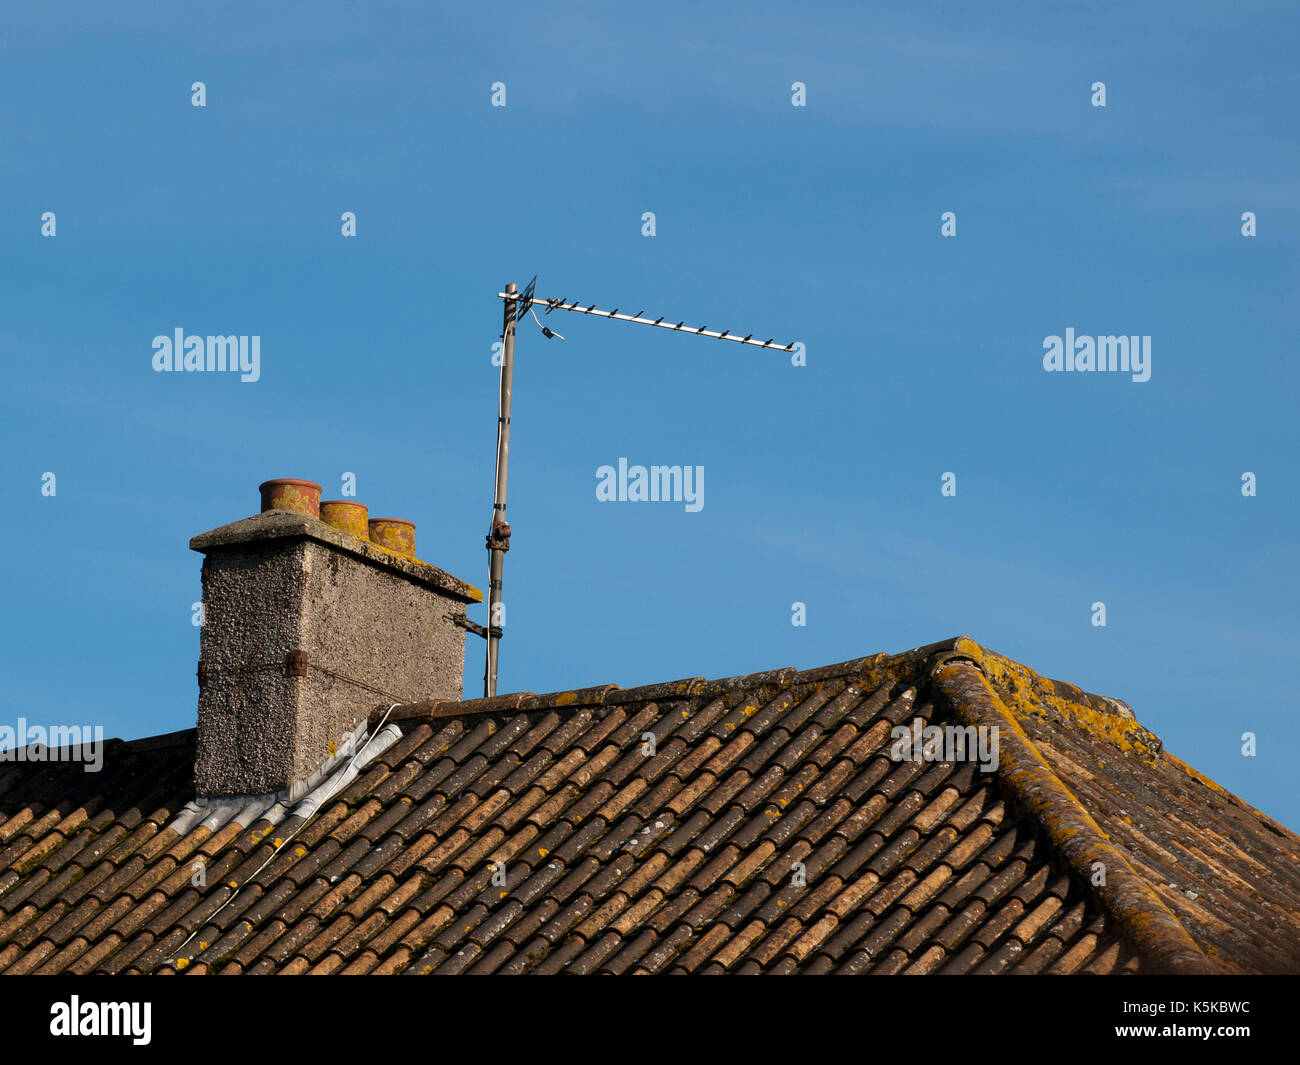 TV Aerial on a rooftop set against a clear blue sky - Stock Image